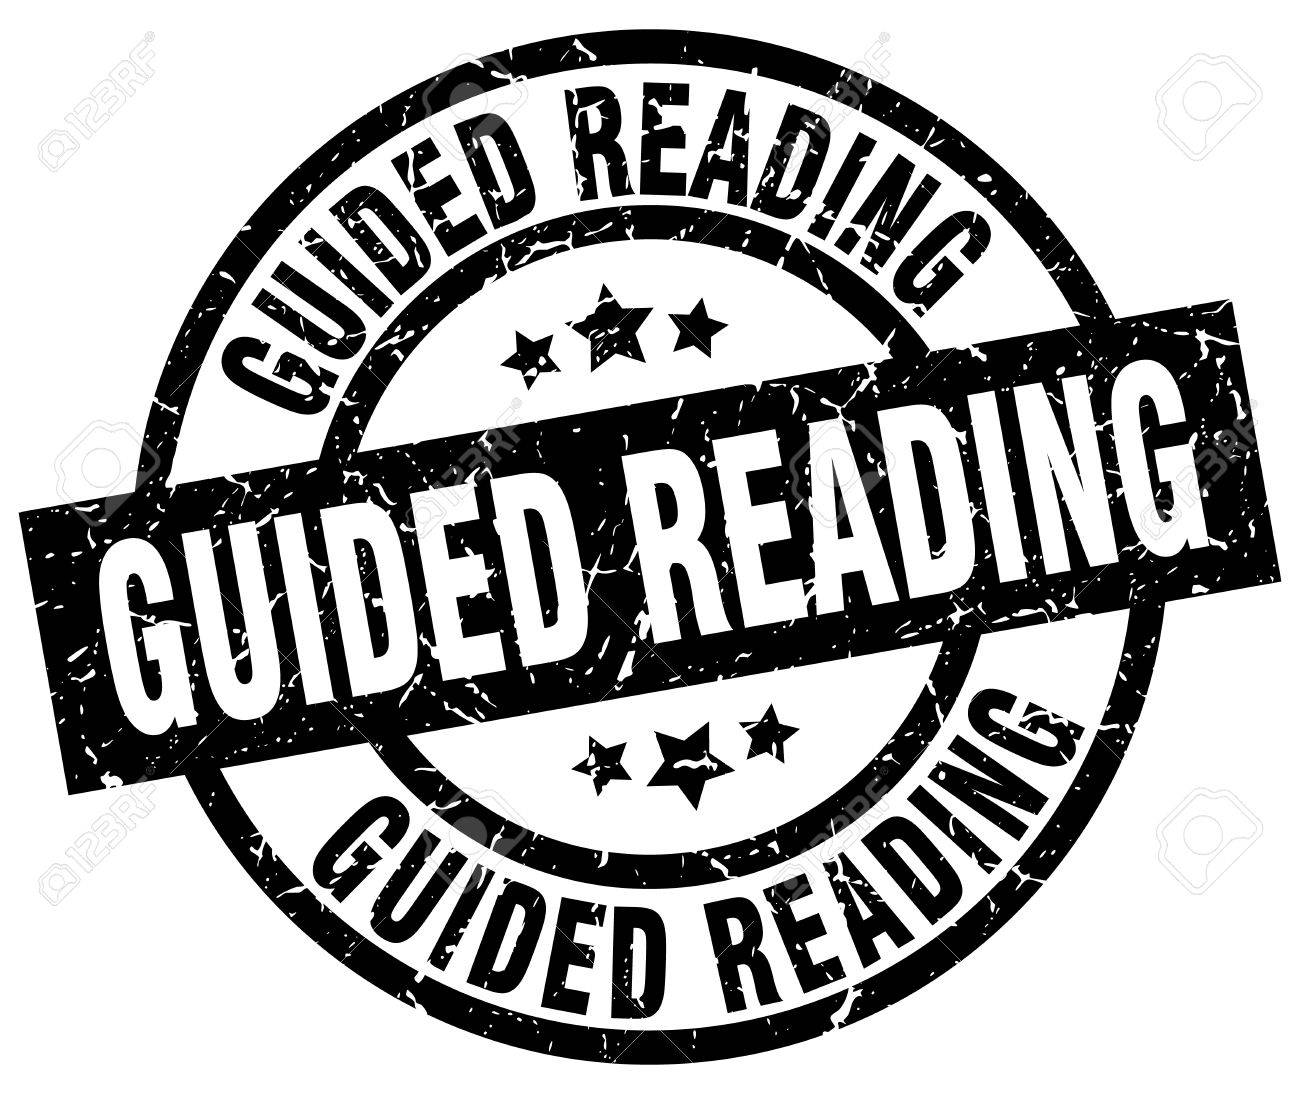 guided reading round grunge black stamp royalty free cliparts